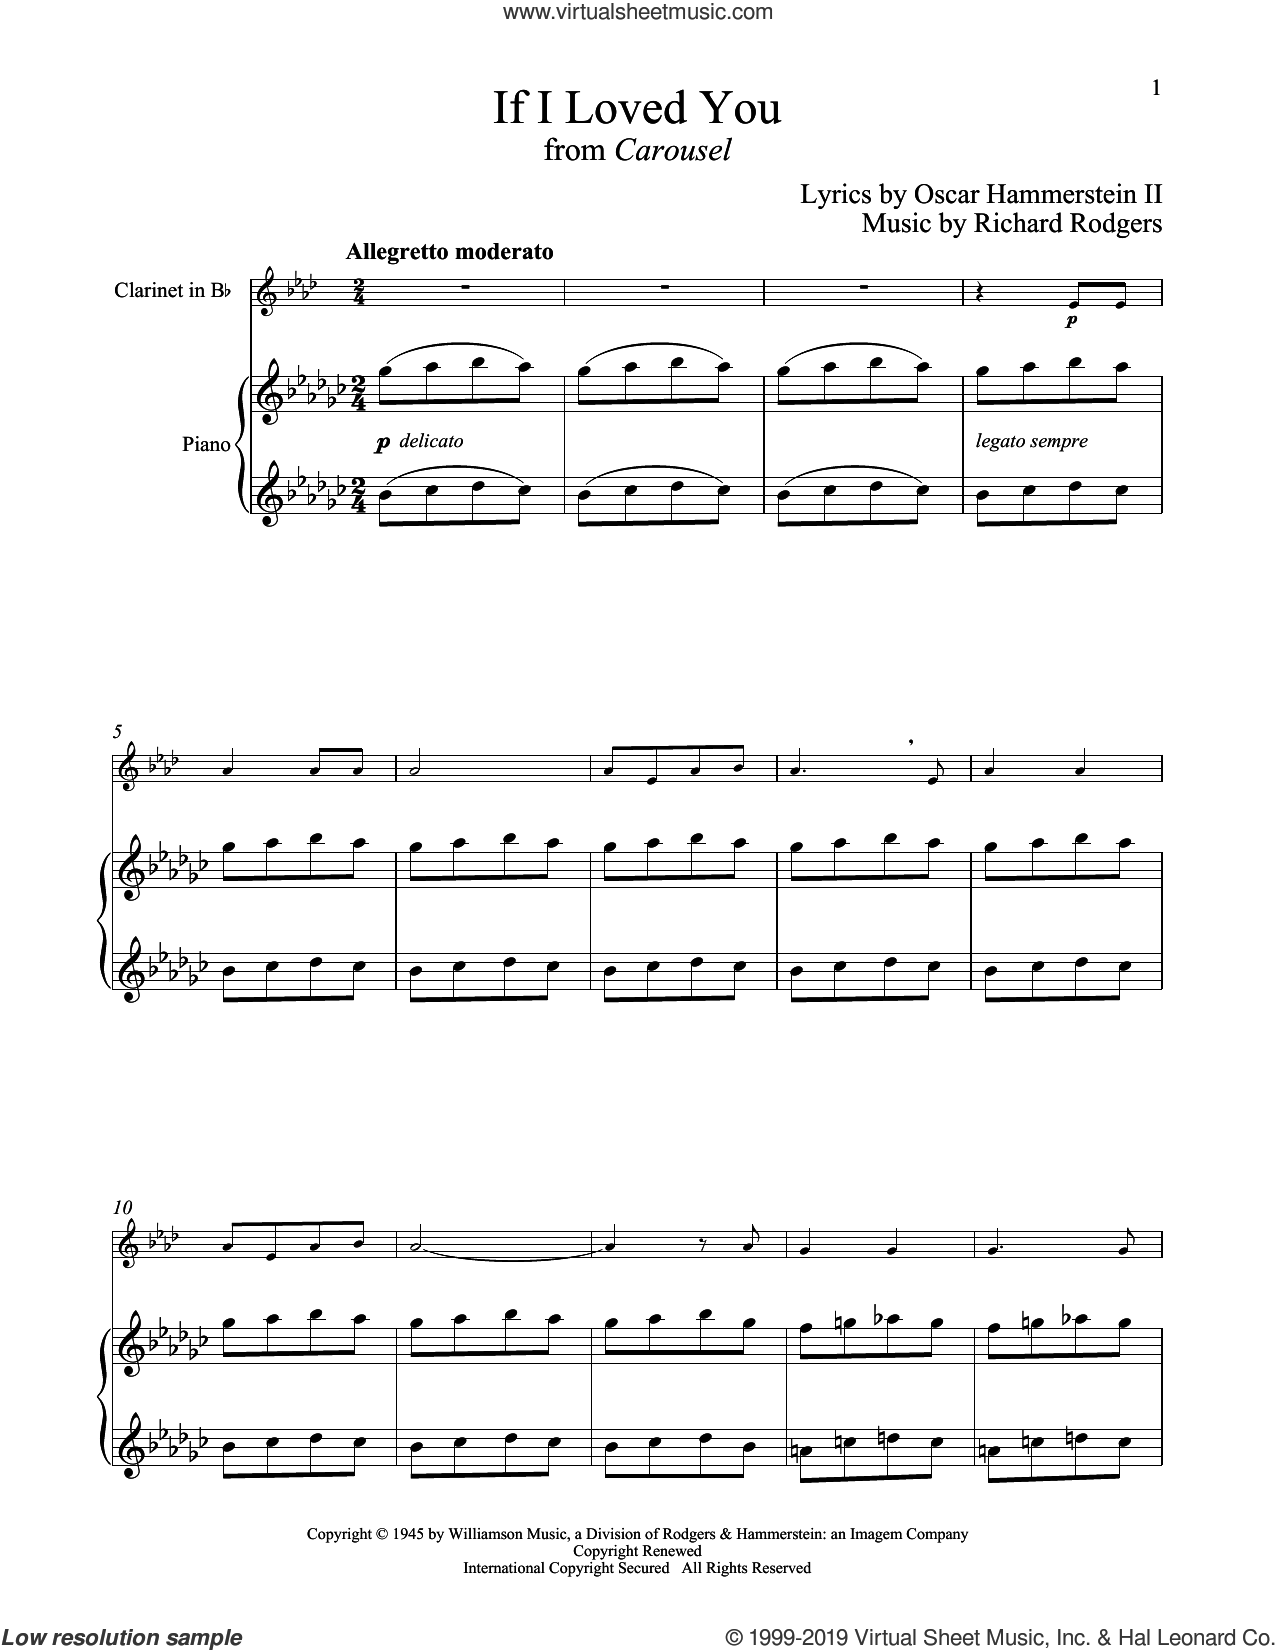 If I Loved You (from Carousel) sheet music for clarinet and piano by Rodgers & Hammerstein, Oscar II Hammerstein and Richard Rodgers, intermediate skill level